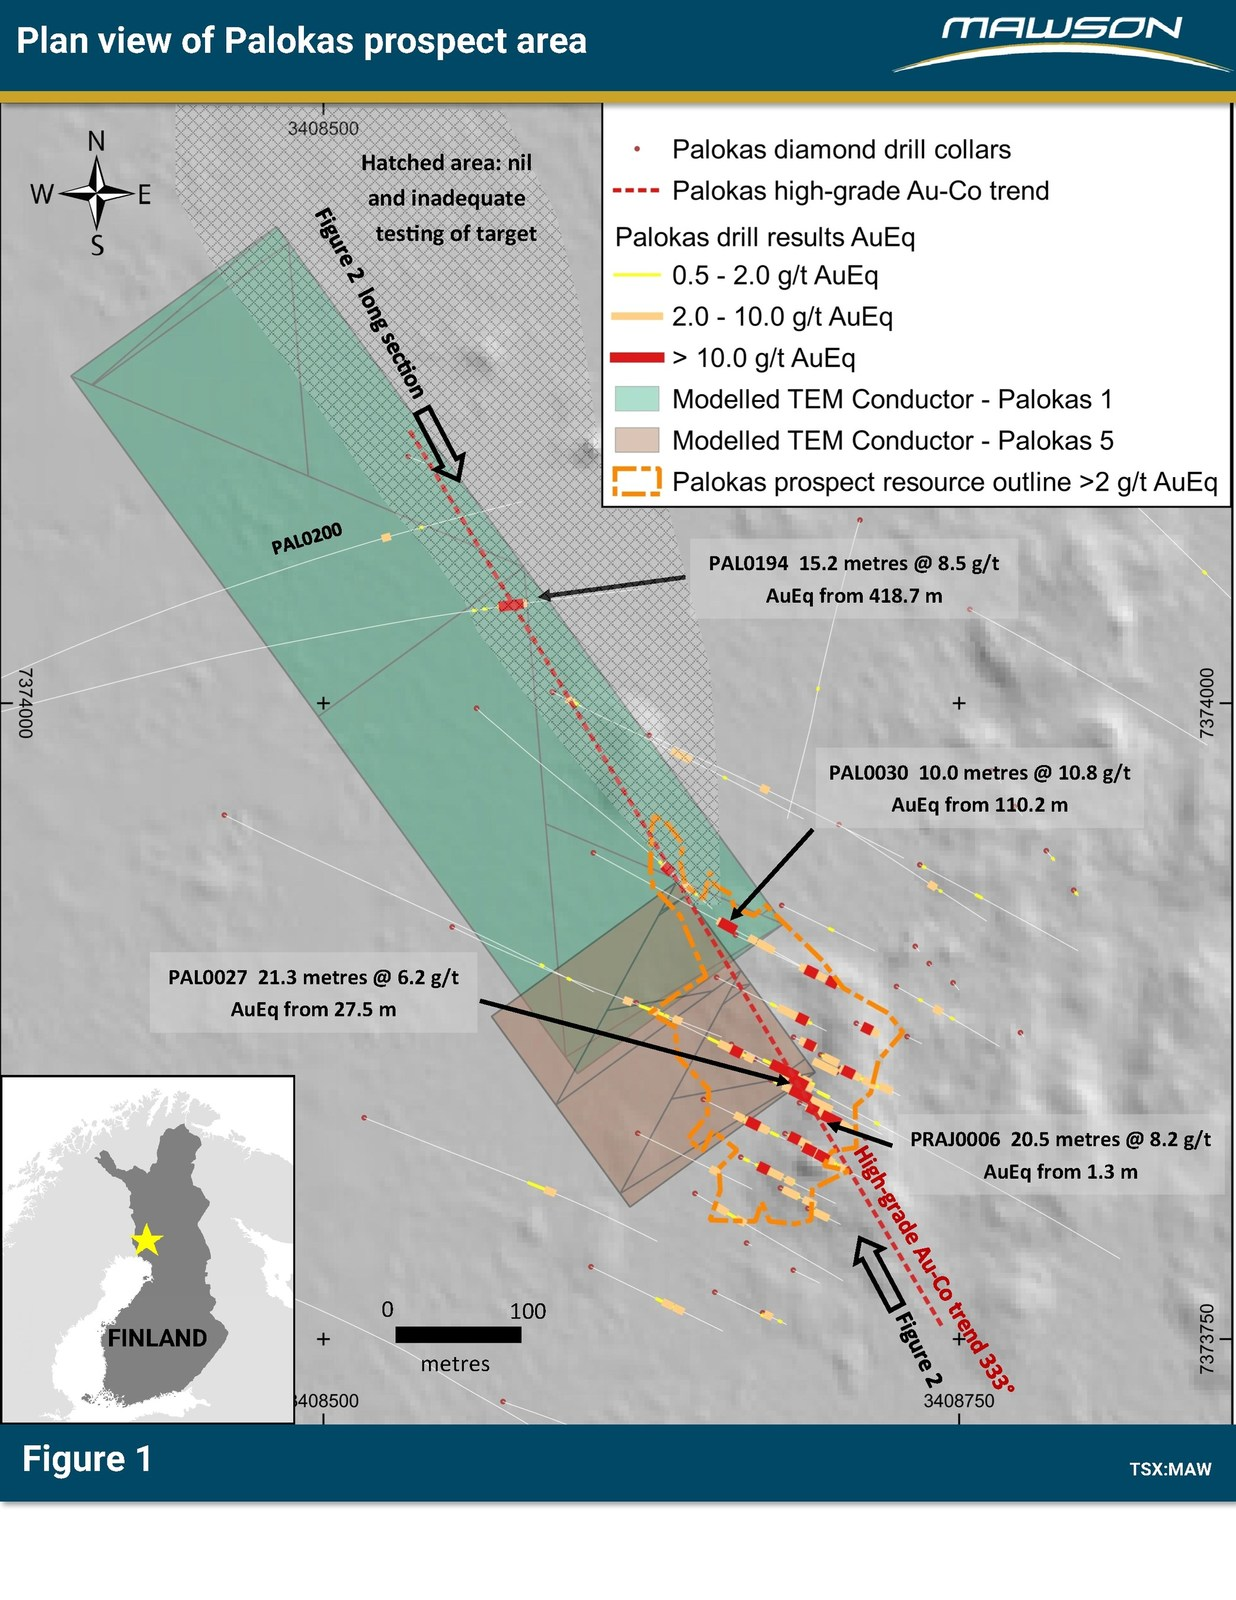 Figure 1: Plan of Palokas prospect area indicating drill results, the outline of 43-101 resource, modelled ground TEM plates over a Lidar background. For more detailed location information, refer to press release of April 23, 2019. Note that Figure 3 is essentially a view down onto the plane of the northwest dipping TEM conductors.